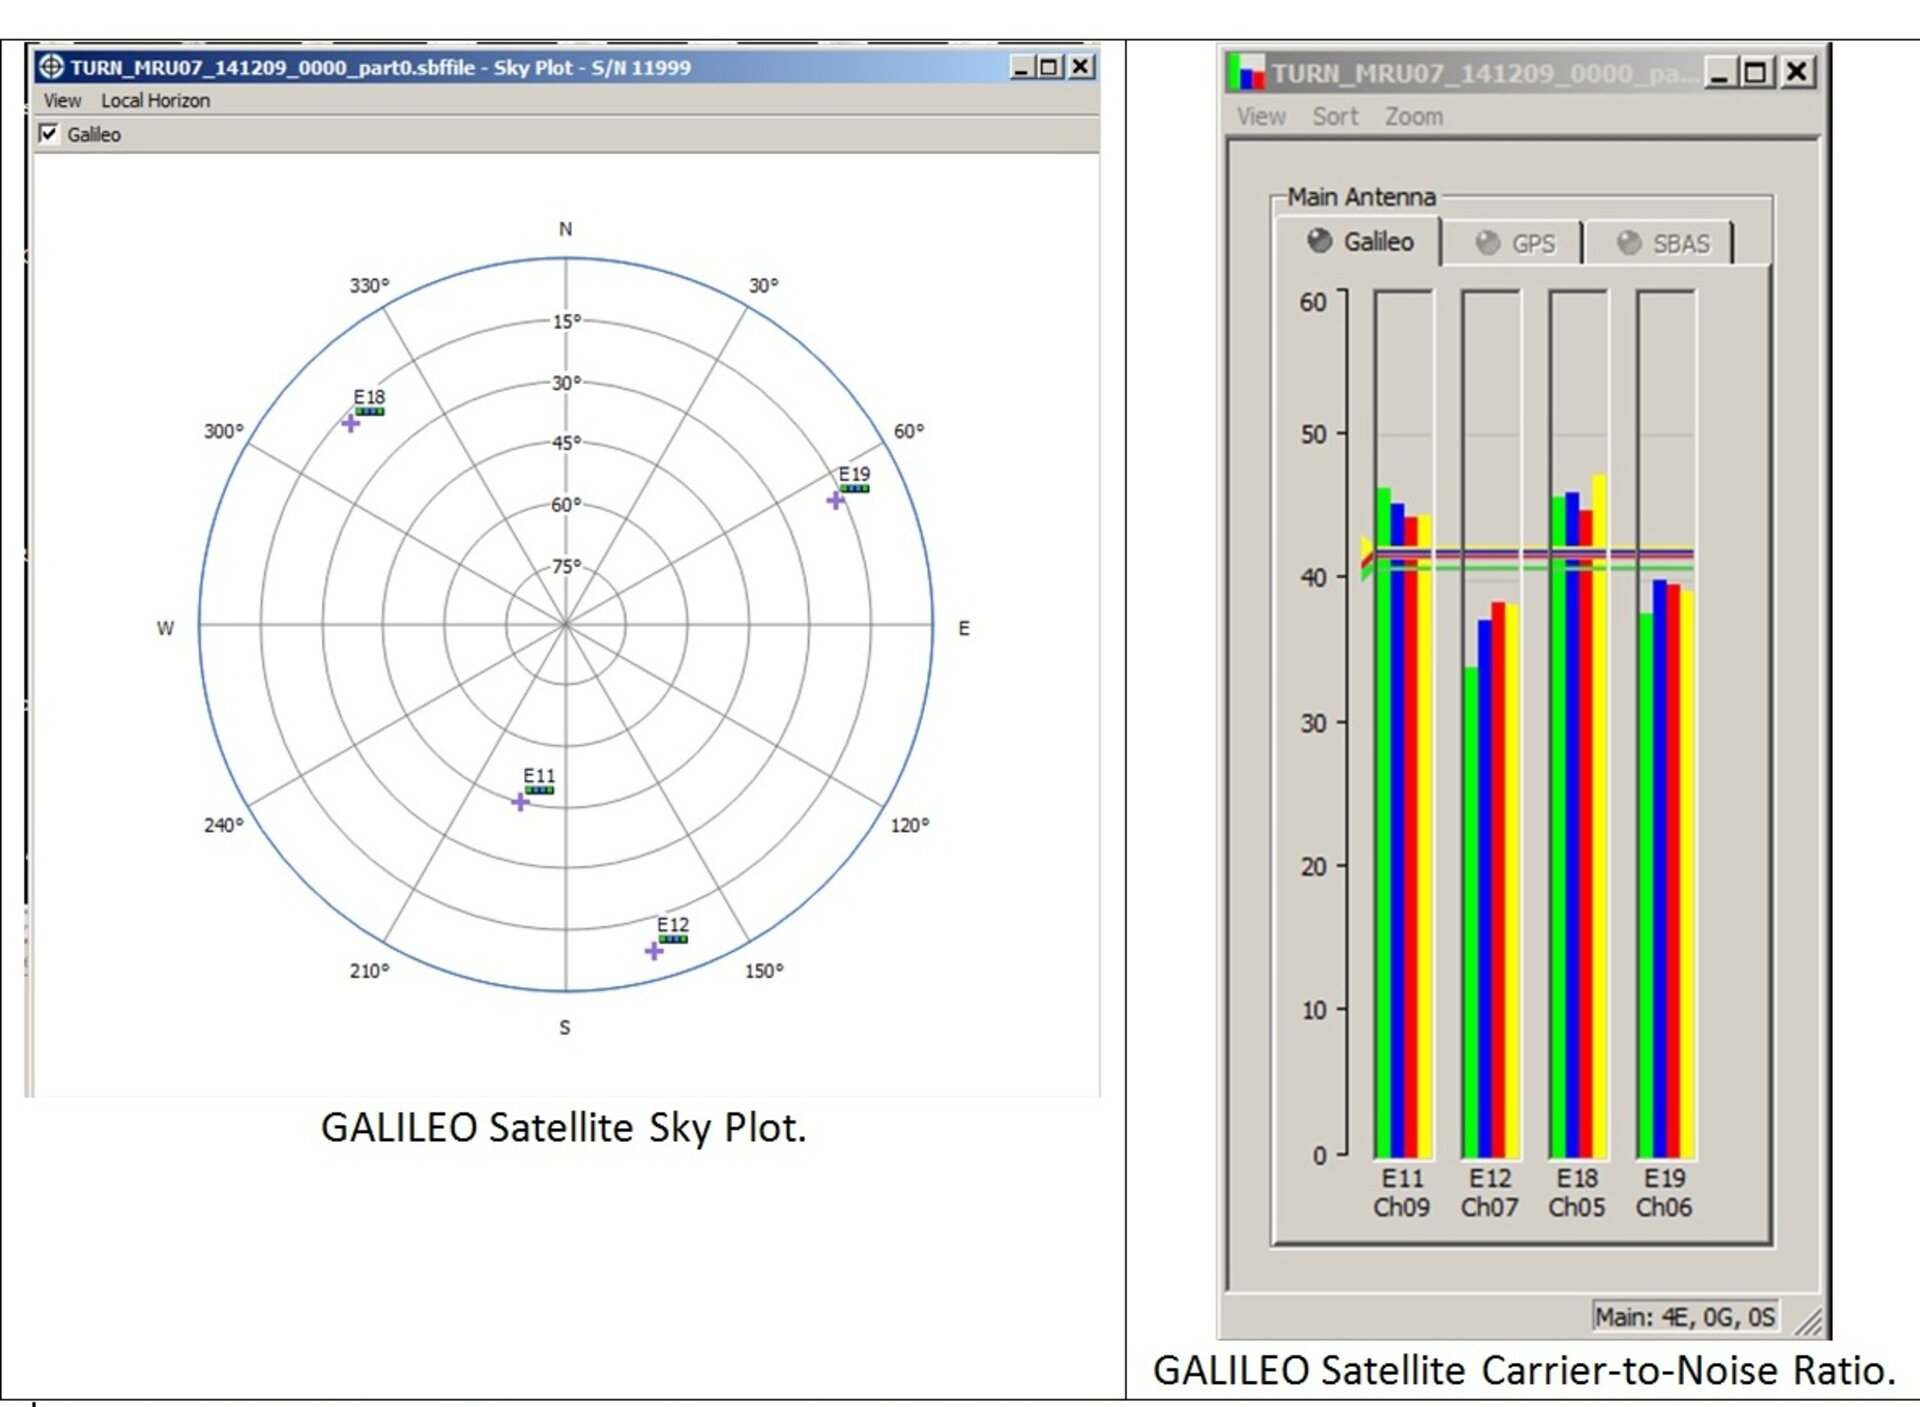 Galileo satellites plotted